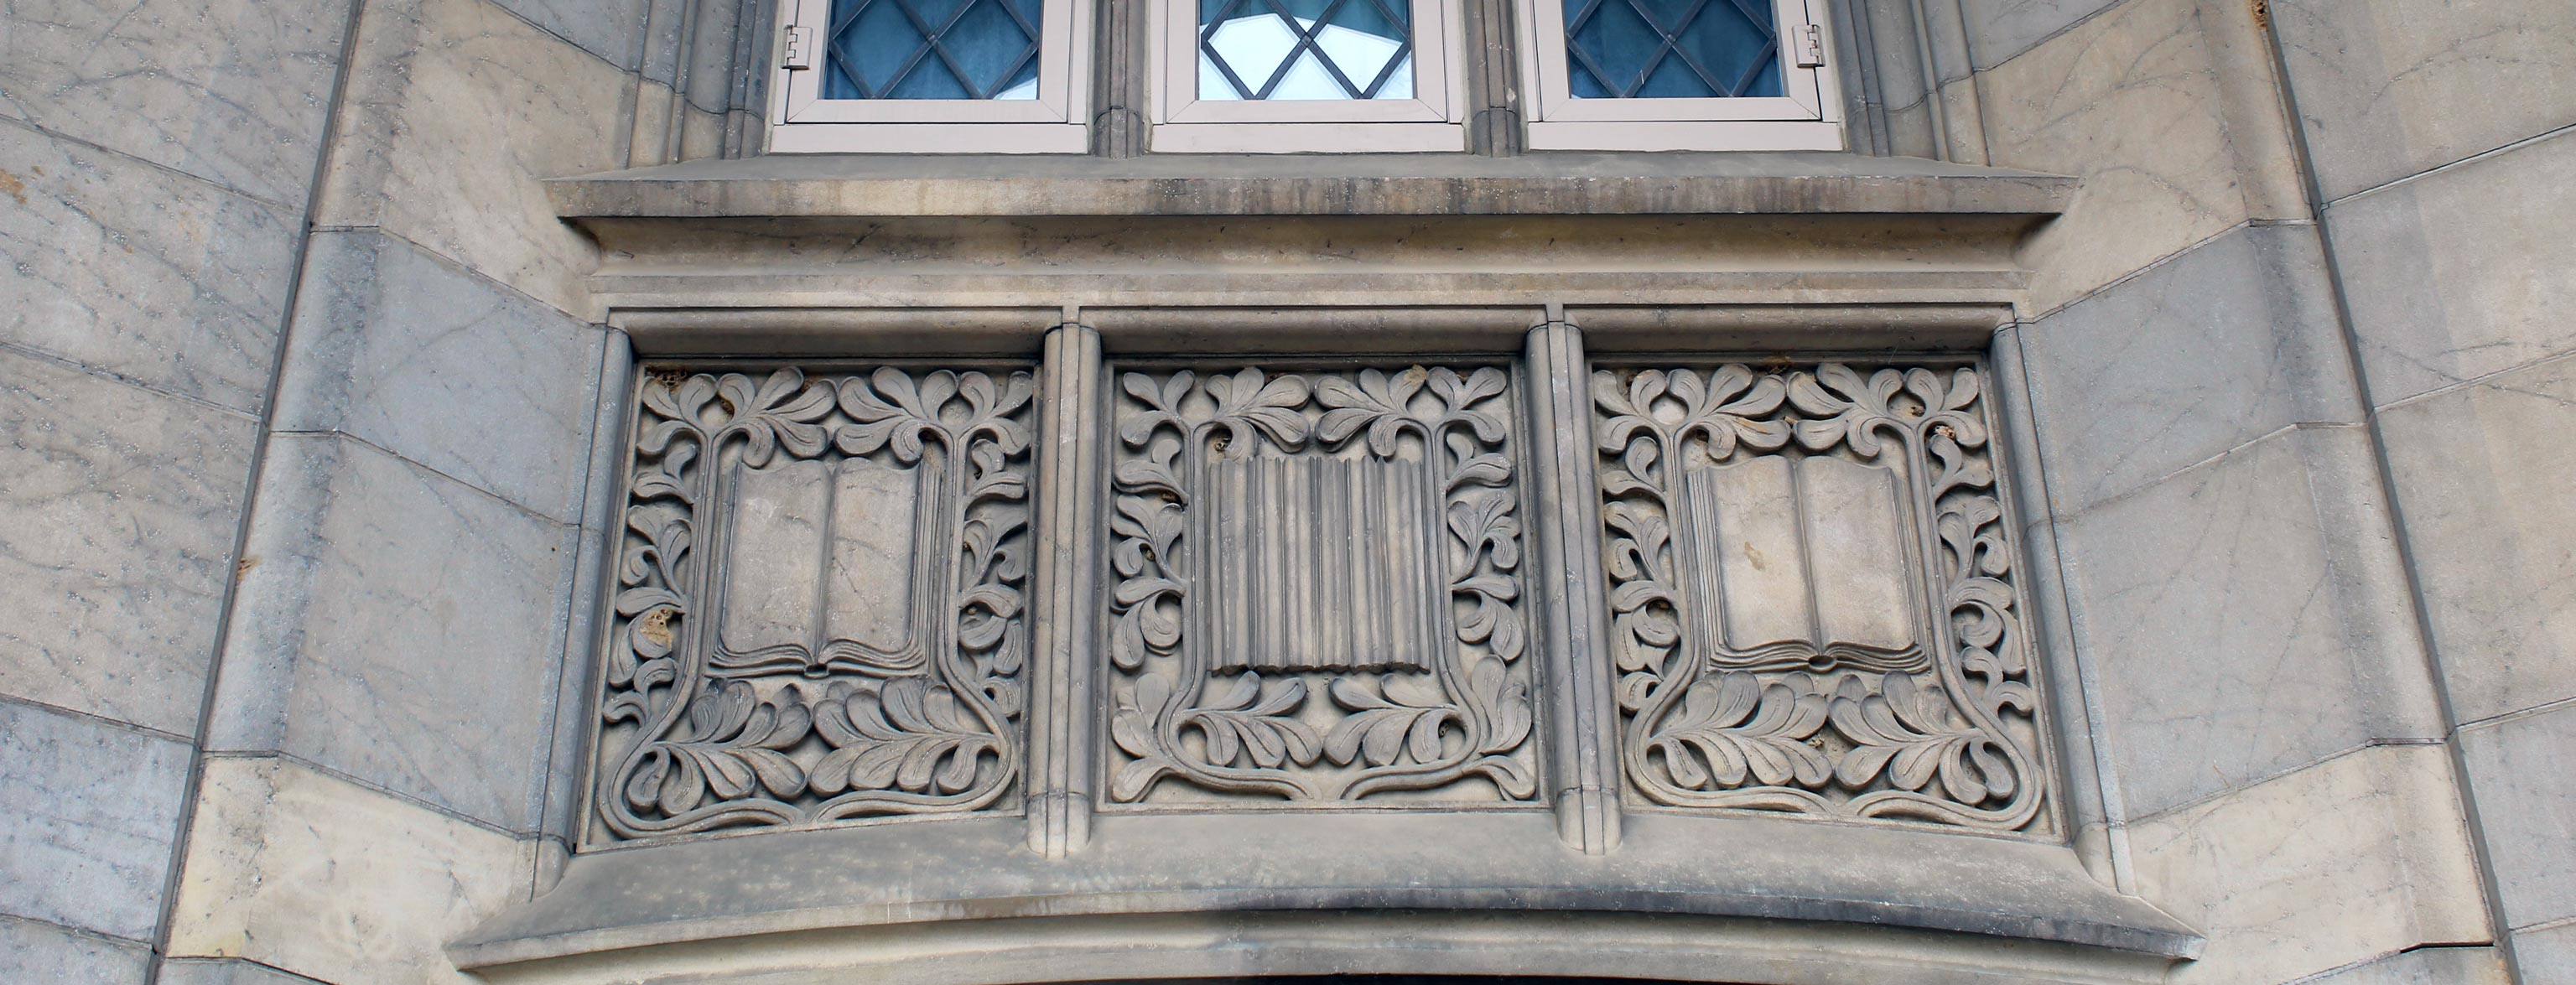 Ornate carvings beneath a window on the exterior of a limestone building